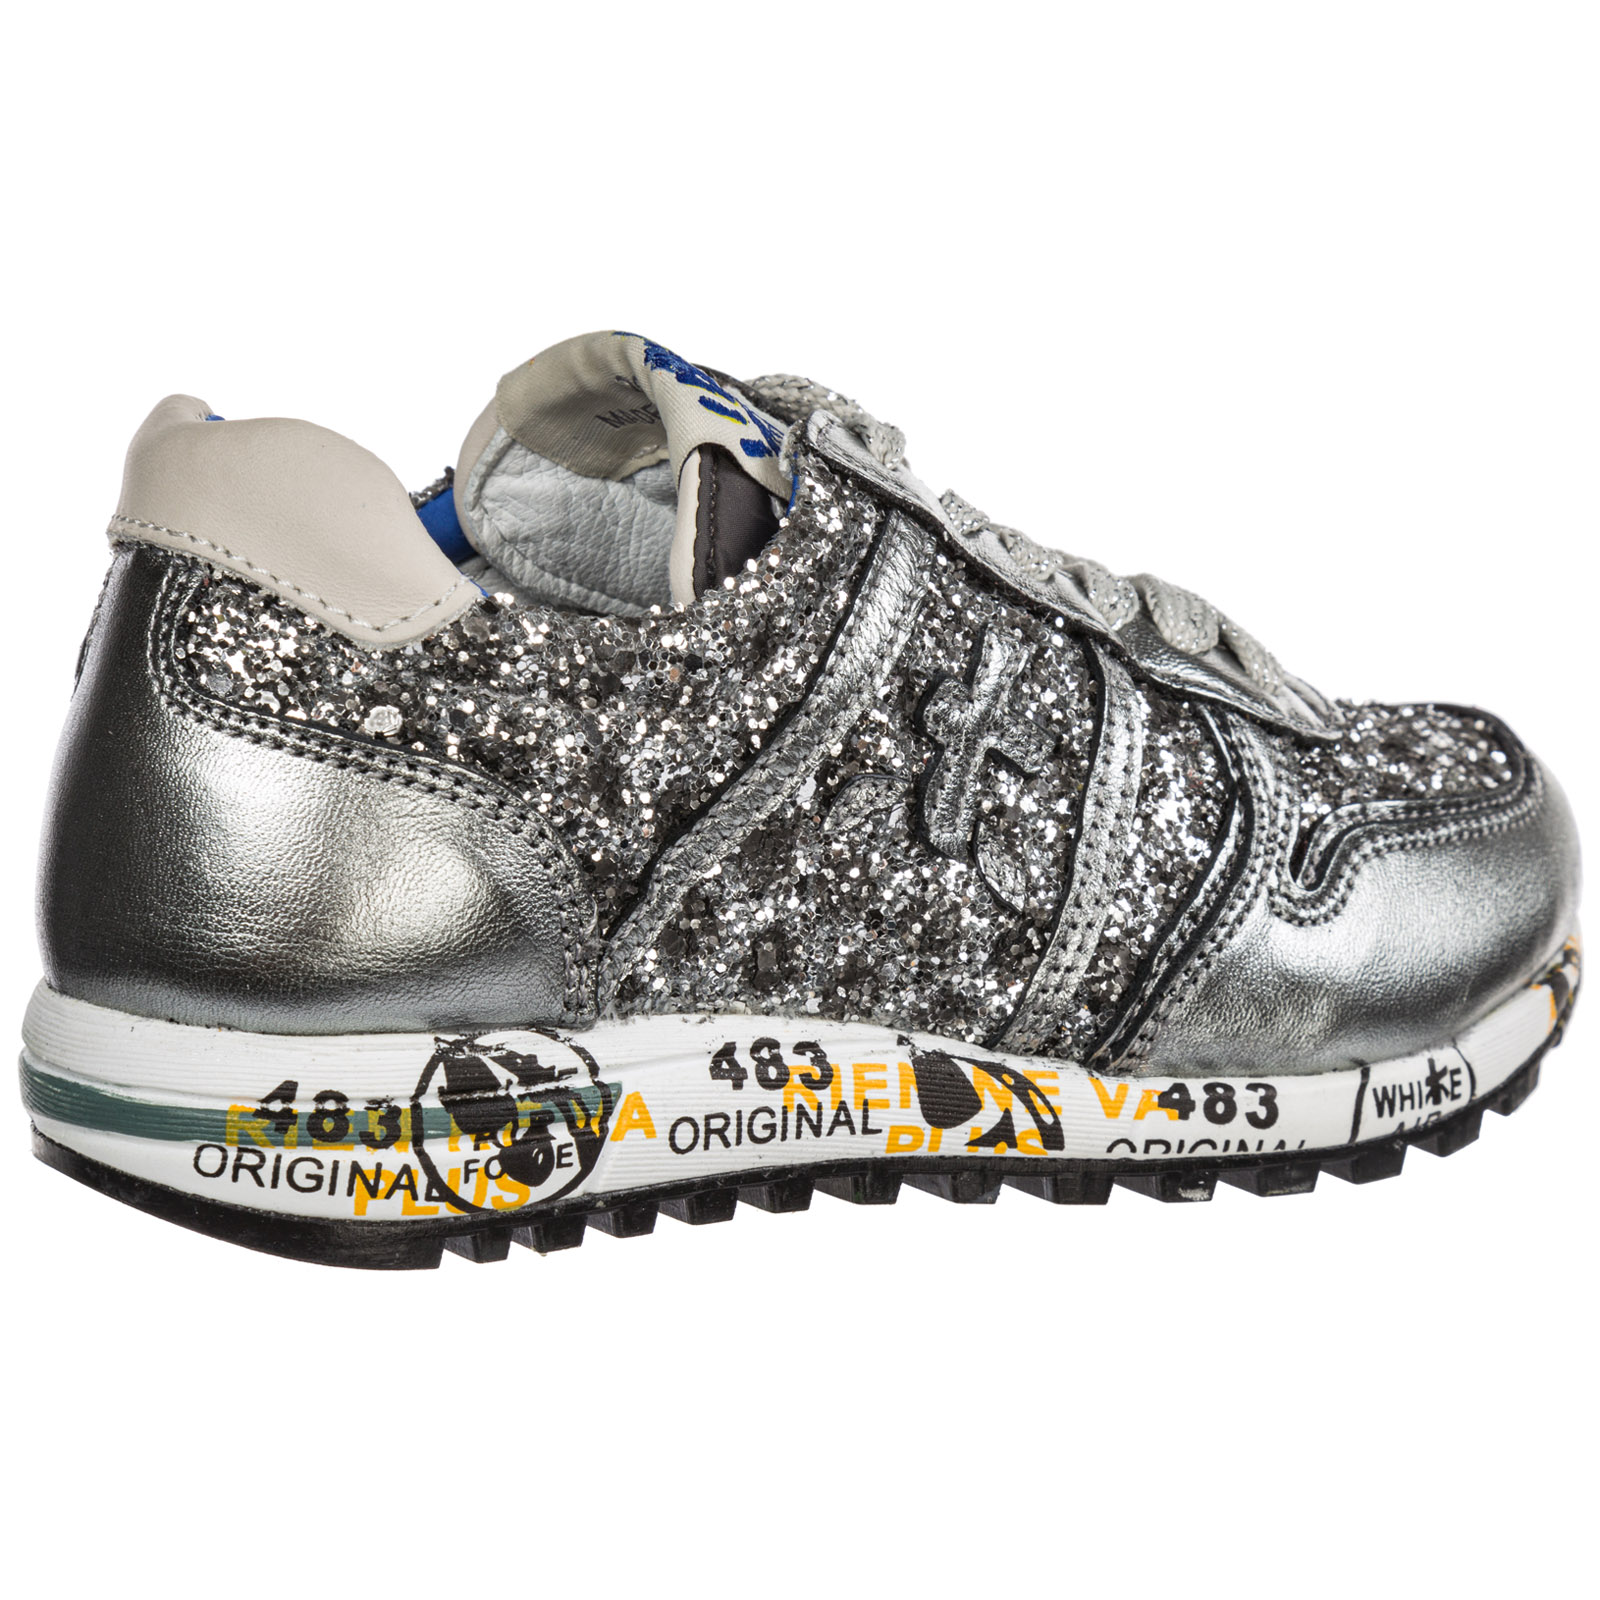 Girls shoes child leather sneakers sky